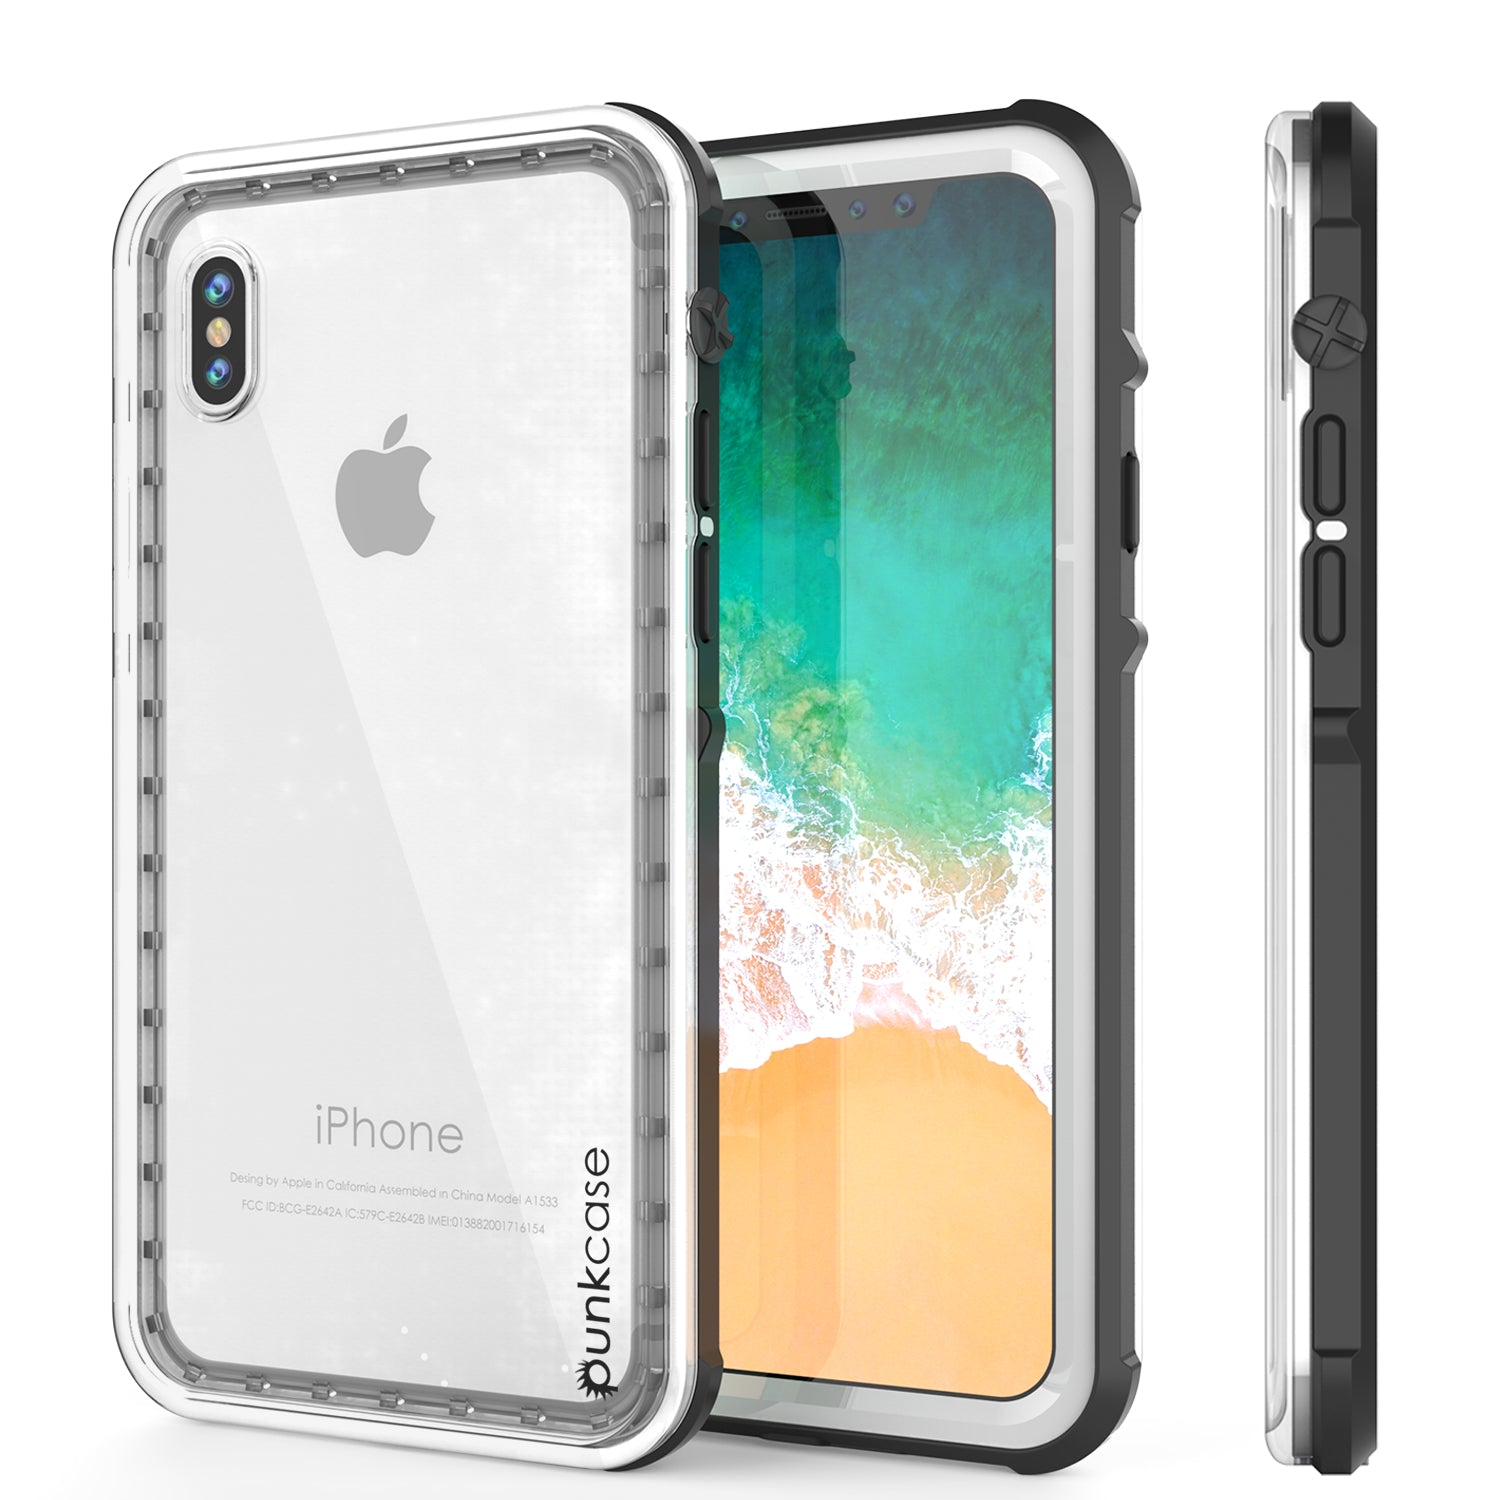 iPhone X Case, PUNKCase [CRYSTAL SERIES] Protective IP68 Certified, Ultra Slim Fit [White]